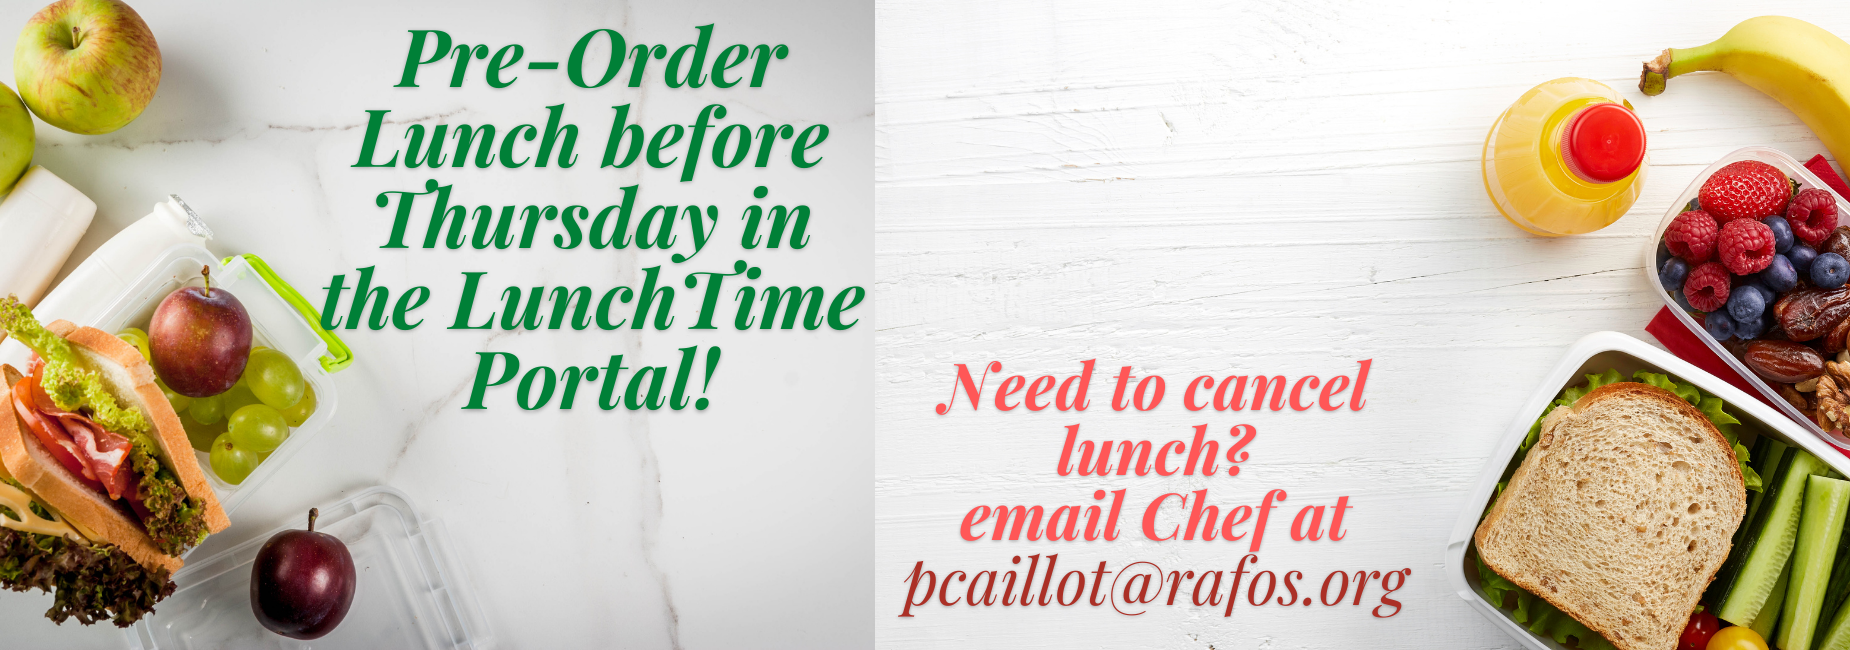 Pre-order your childs lunch in the lunch portal